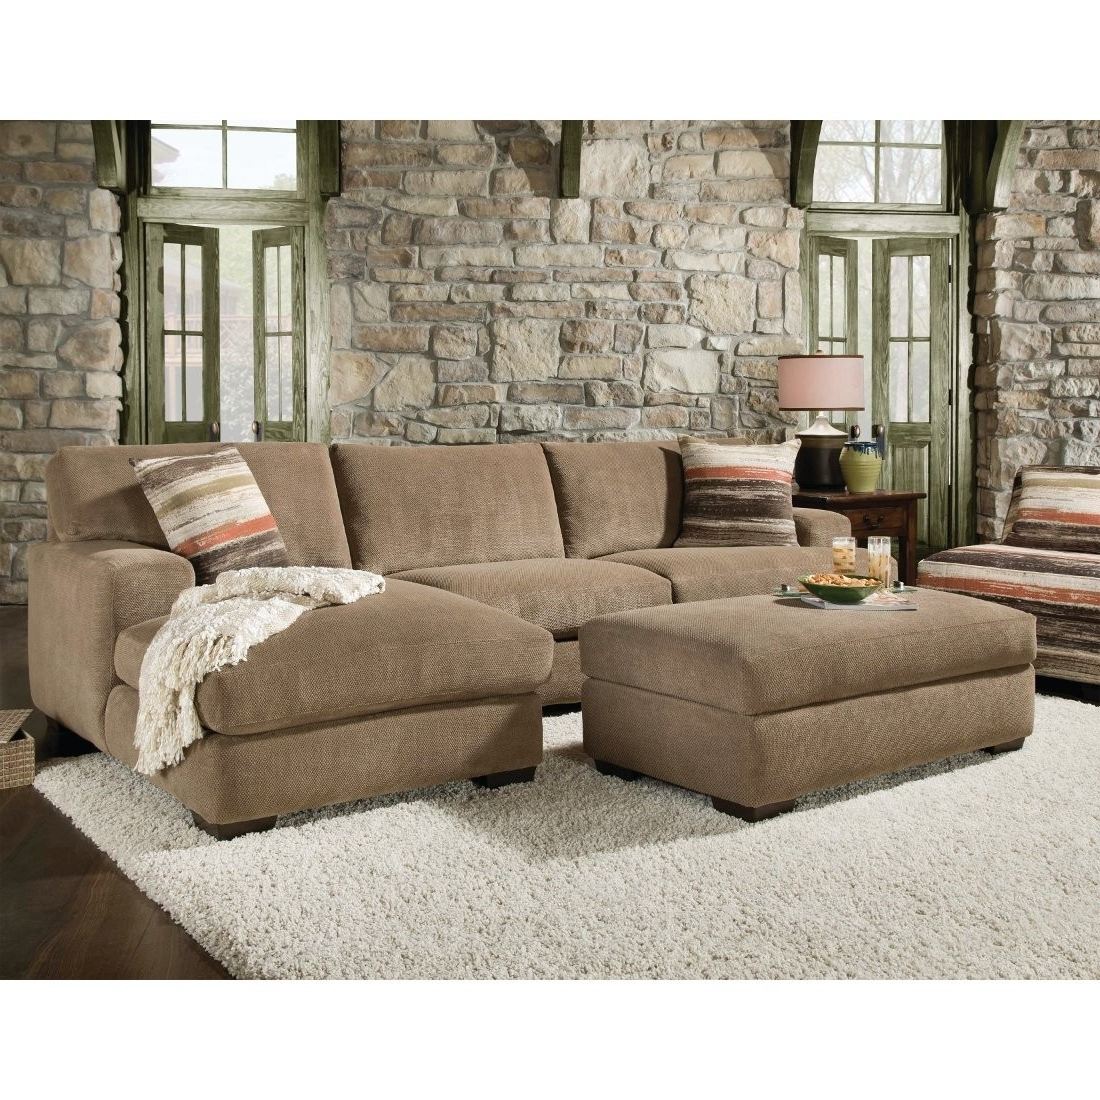 Well Known Beautiful Sectional Sofa With Chaise And Ottoman Pictures For Sectional Sofas With Chaise Lounge And Ottoman (View 20 of 20)